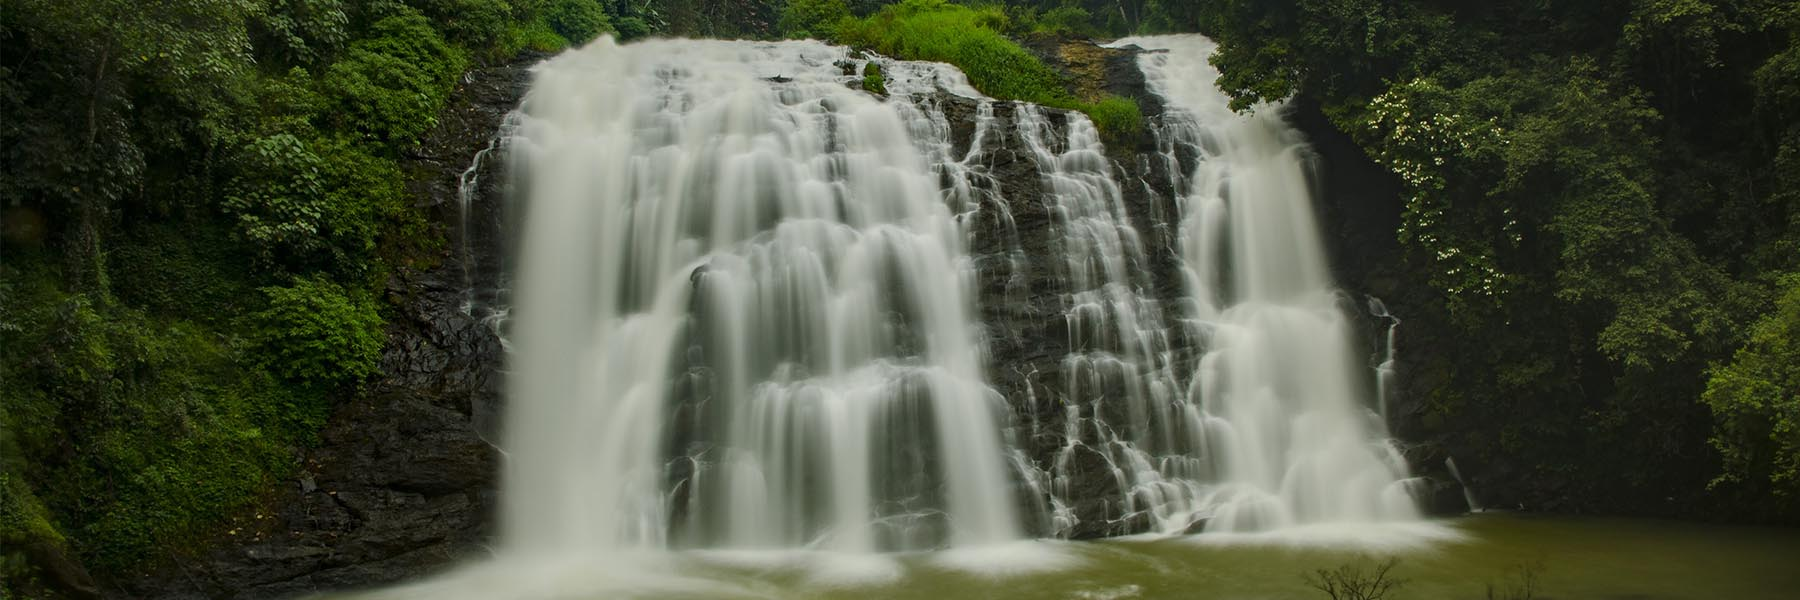 Waterfalls hopping in Coorg